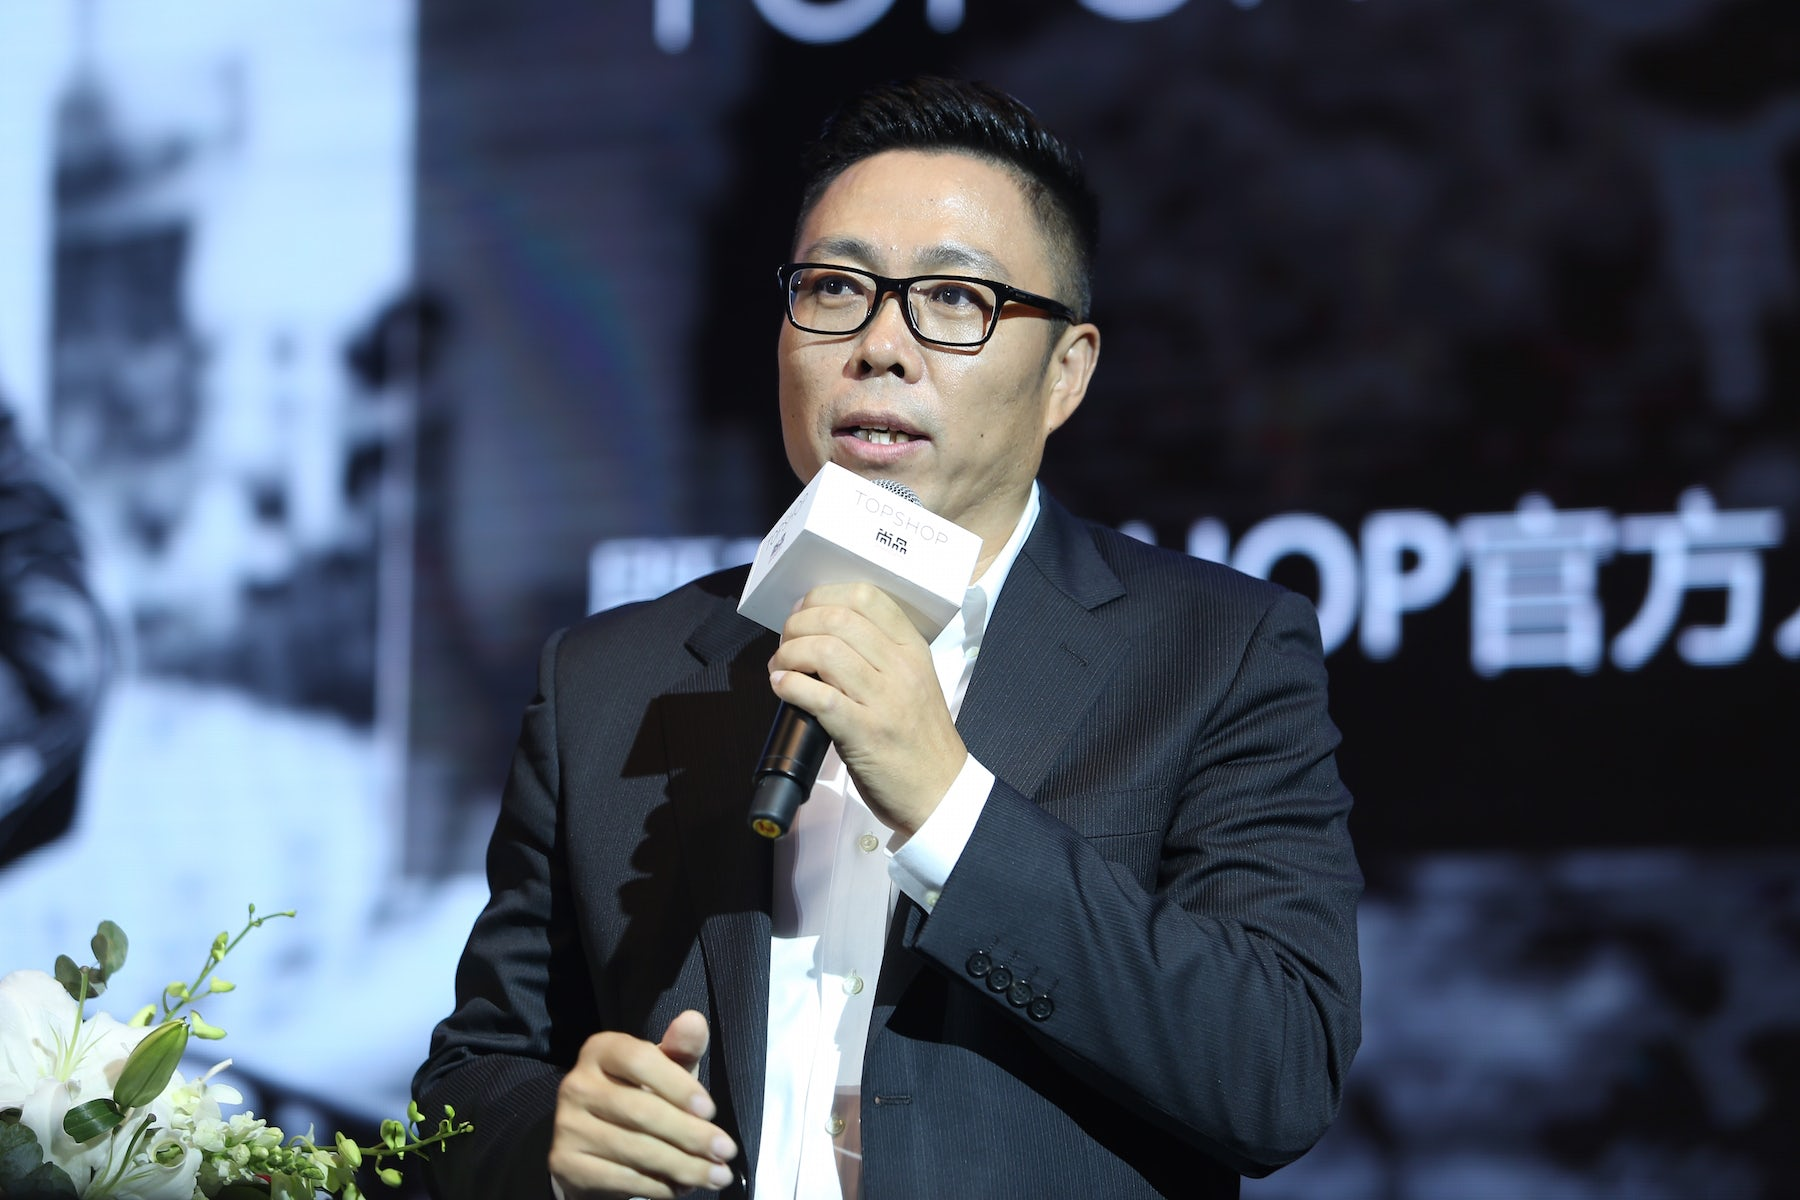 Shangpin founder and CEO David Zhao | Source: Courtesy